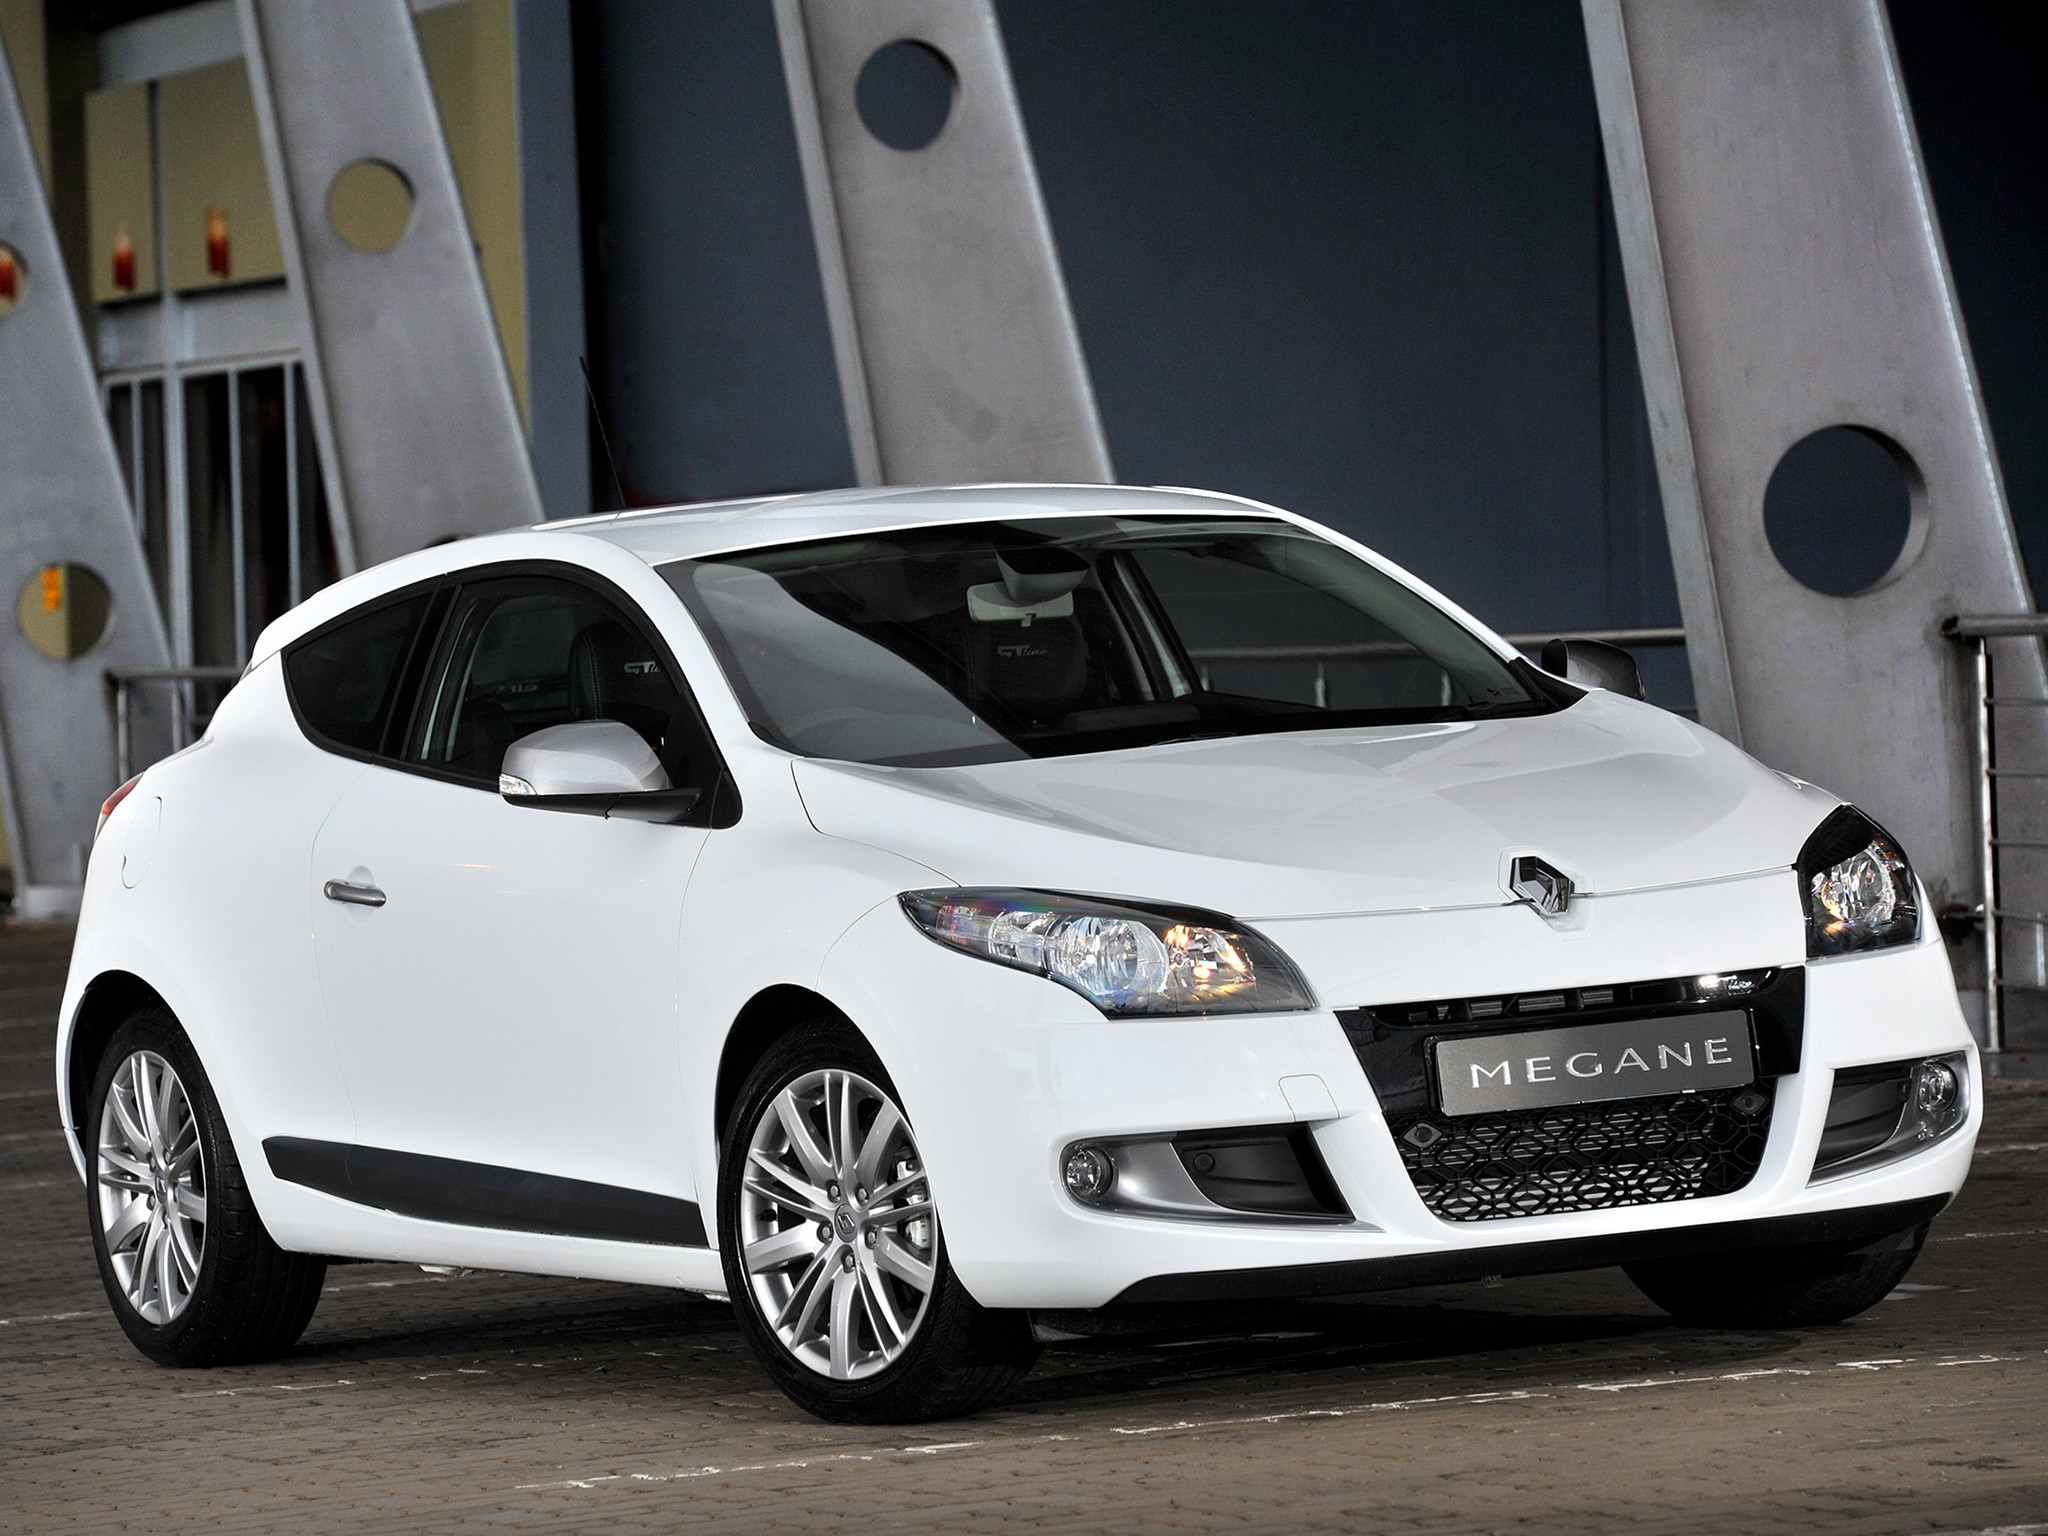 renault megane gt 3 doors specs photos 2010 2011 2012 2013 autoevolution. Black Bedroom Furniture Sets. Home Design Ideas